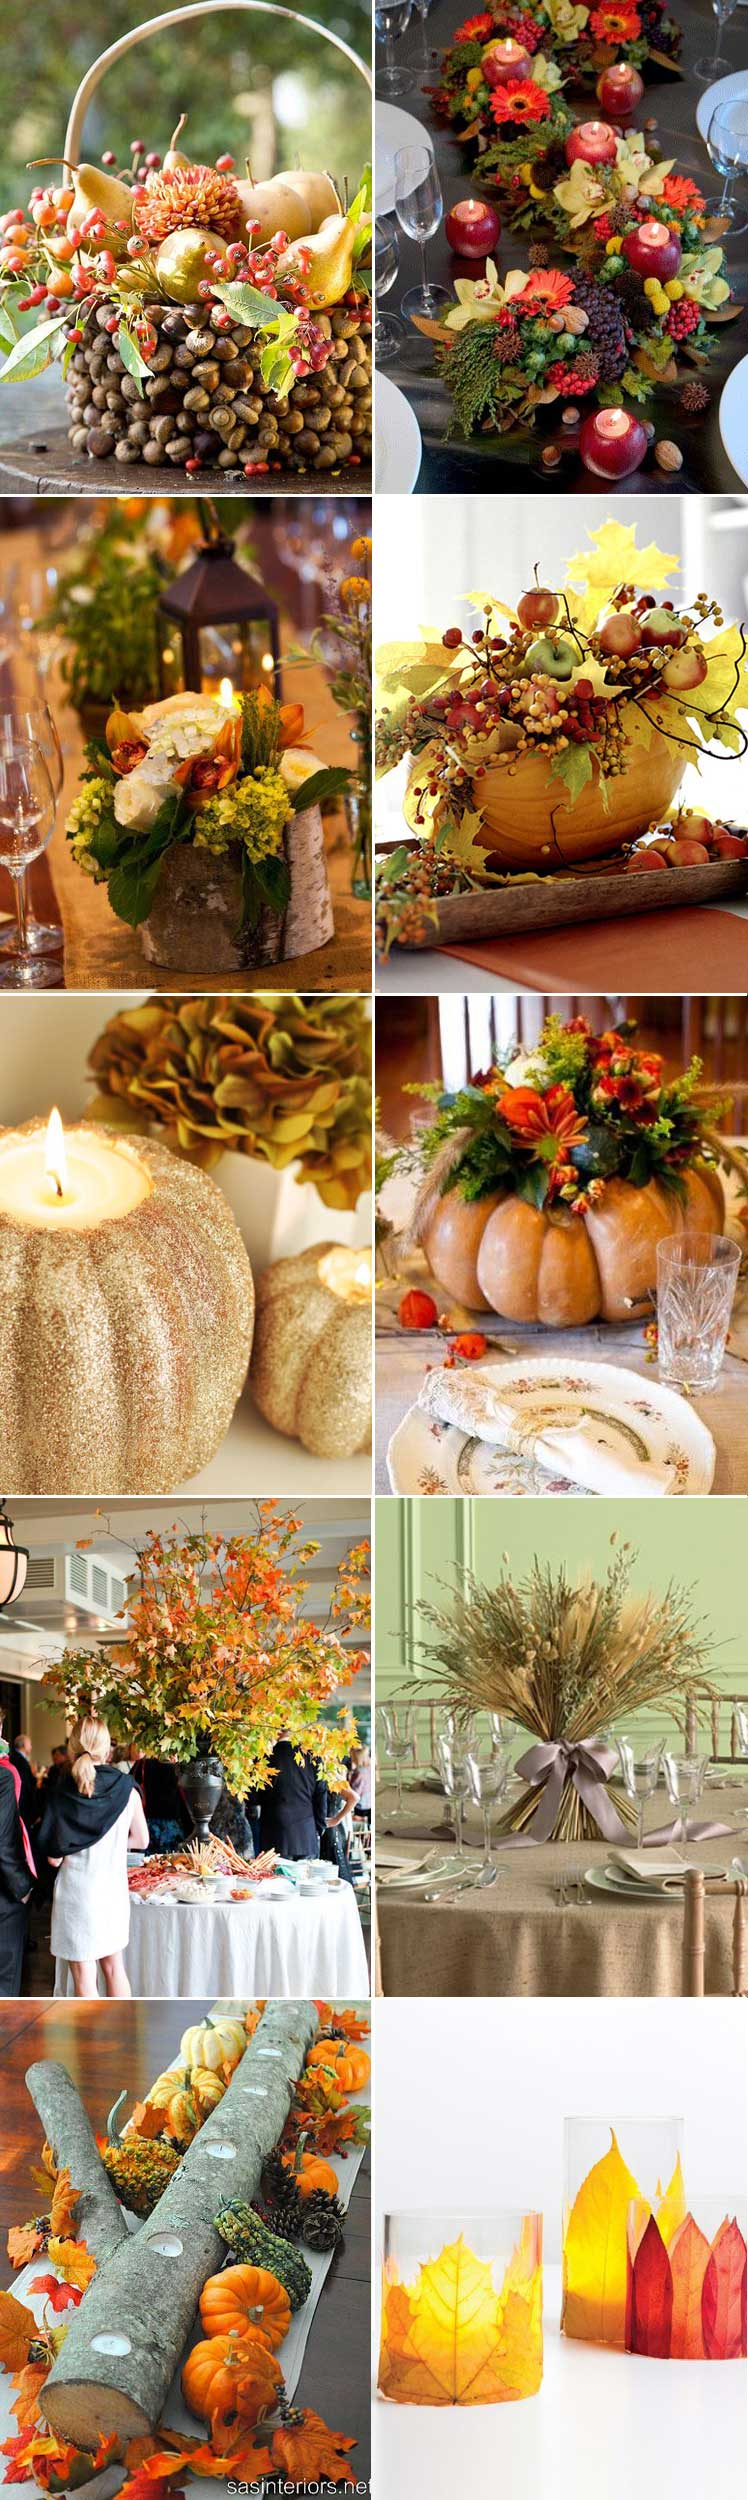 Autumn centrepiece inspiration